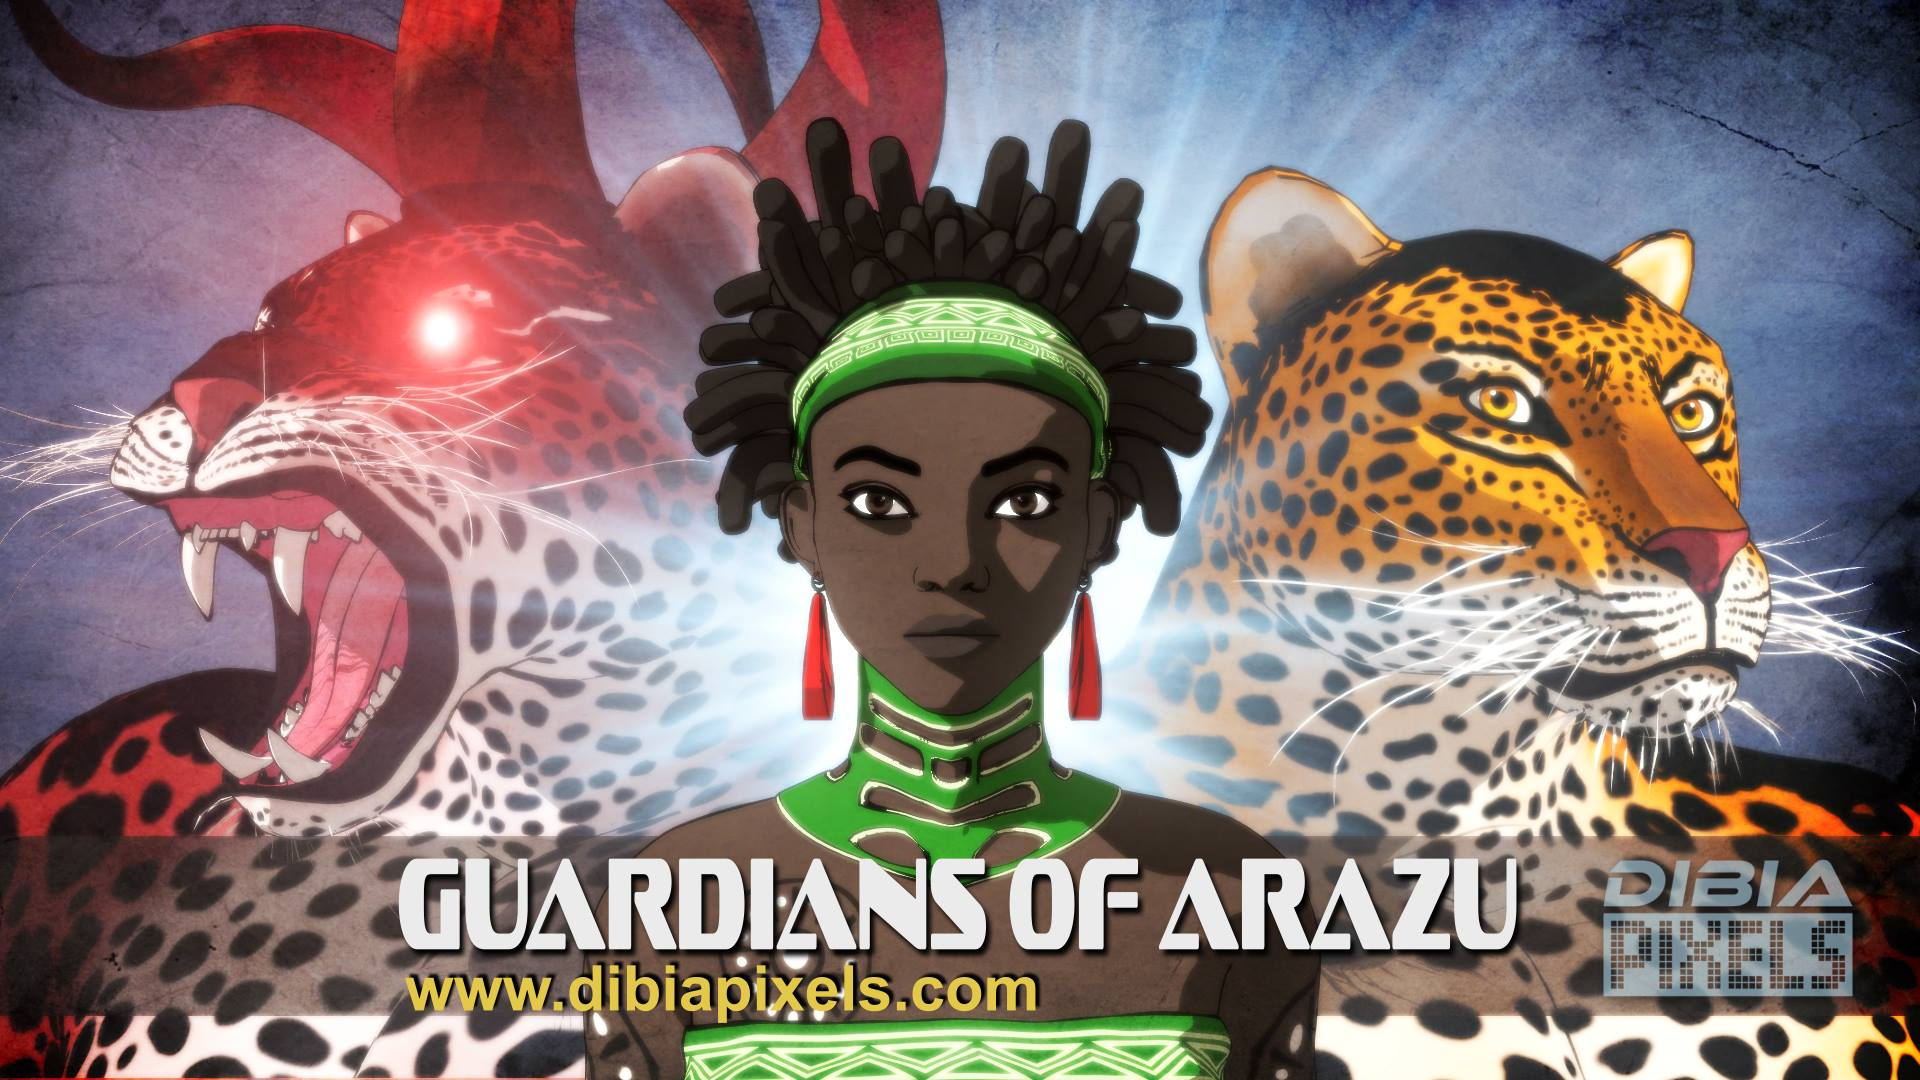 Guardians of Arazu: The Animated Series (Trailer)